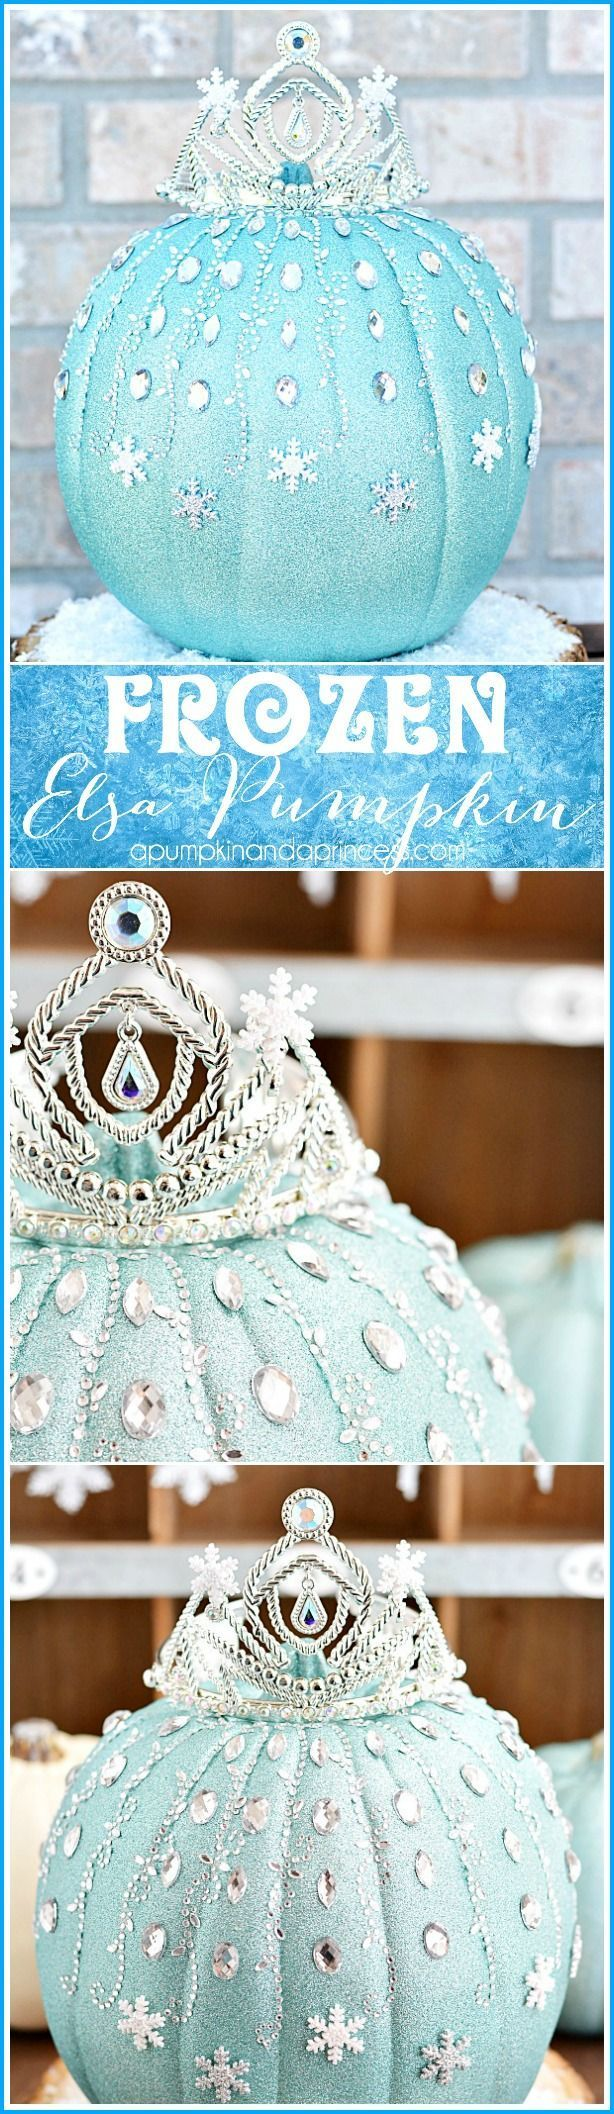 diy frozen elsa pumpkin from michaelsmakers crystalowens - Frozen Halloween Decorations